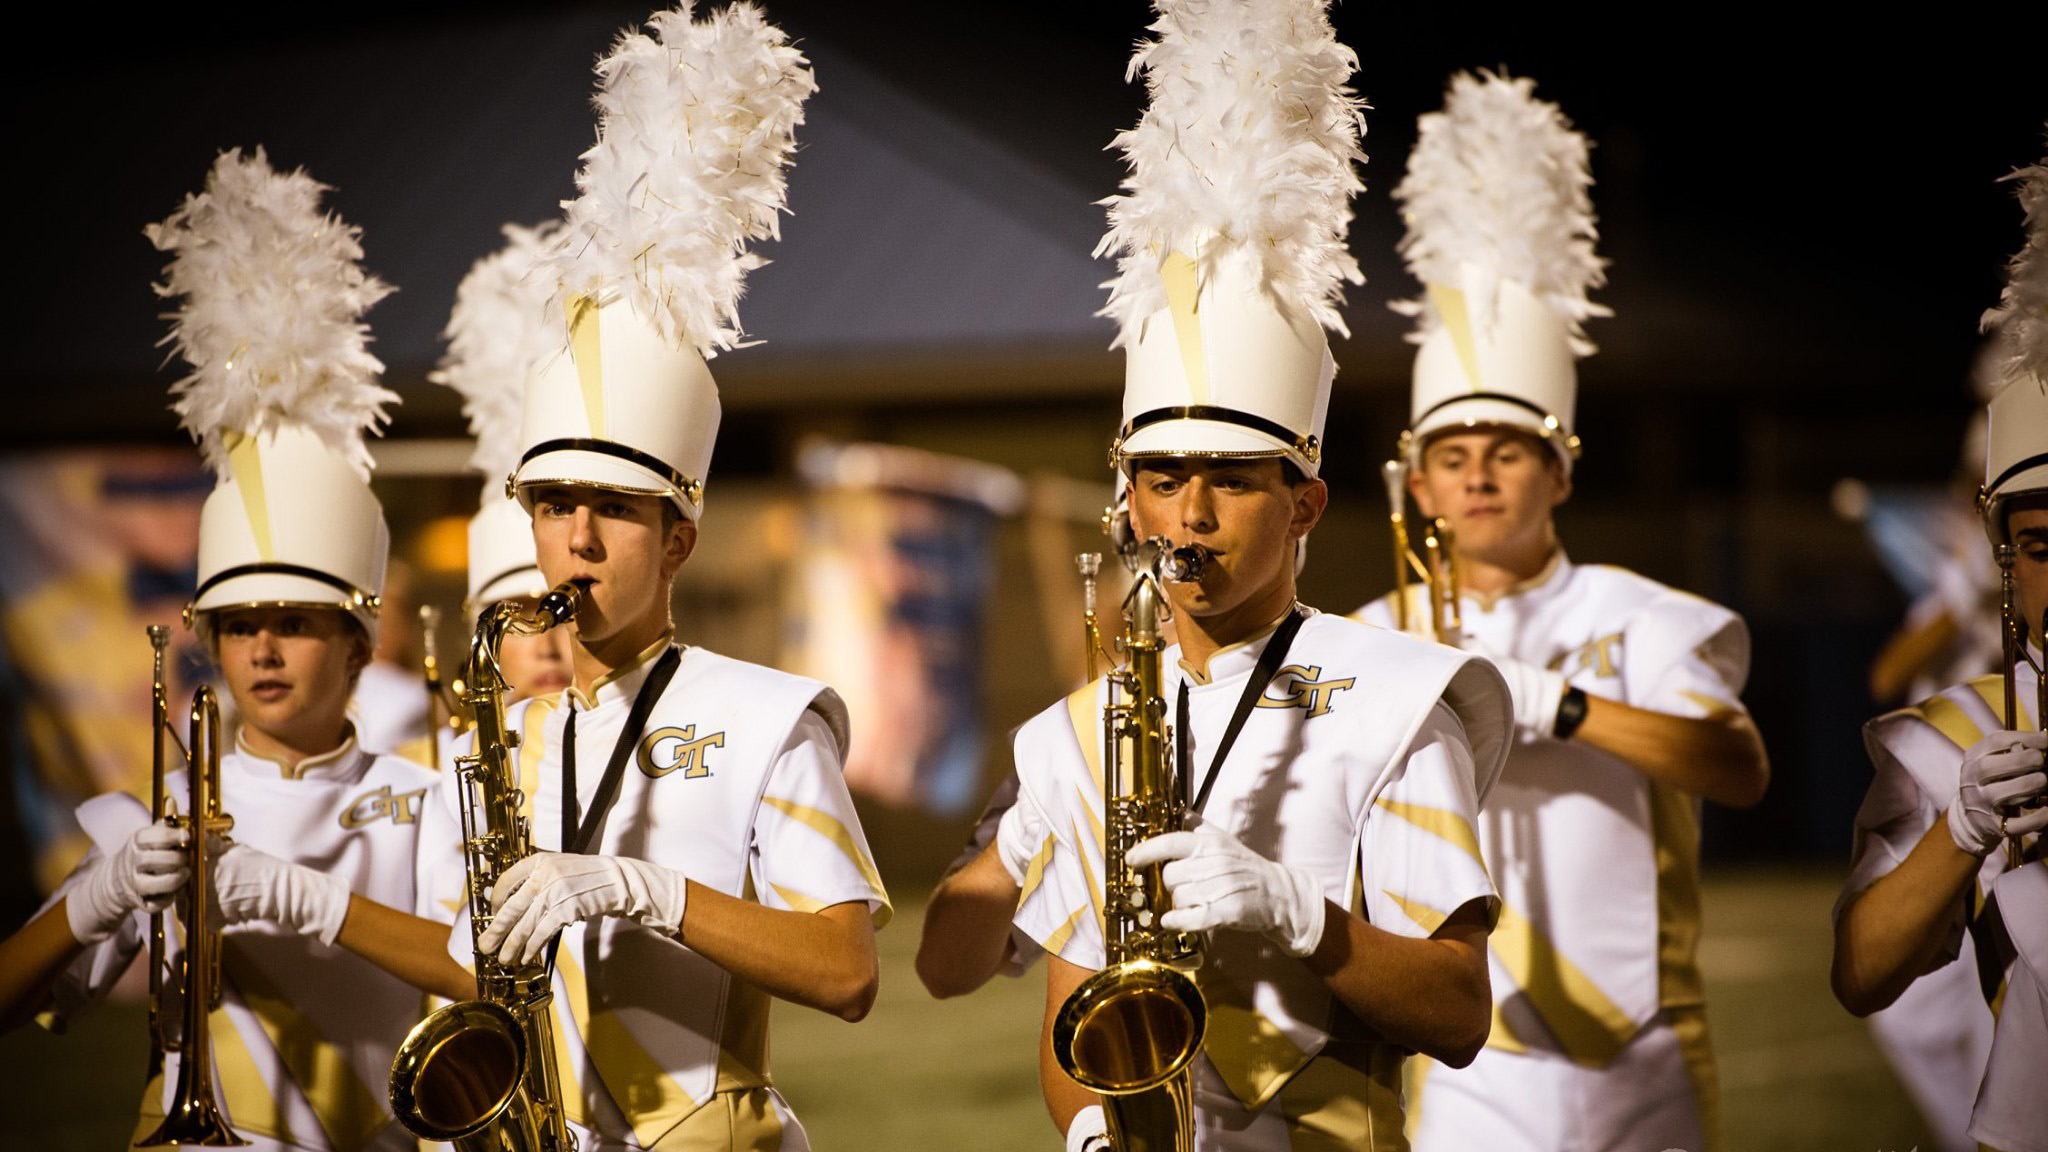 Members of the band playing saxophone.